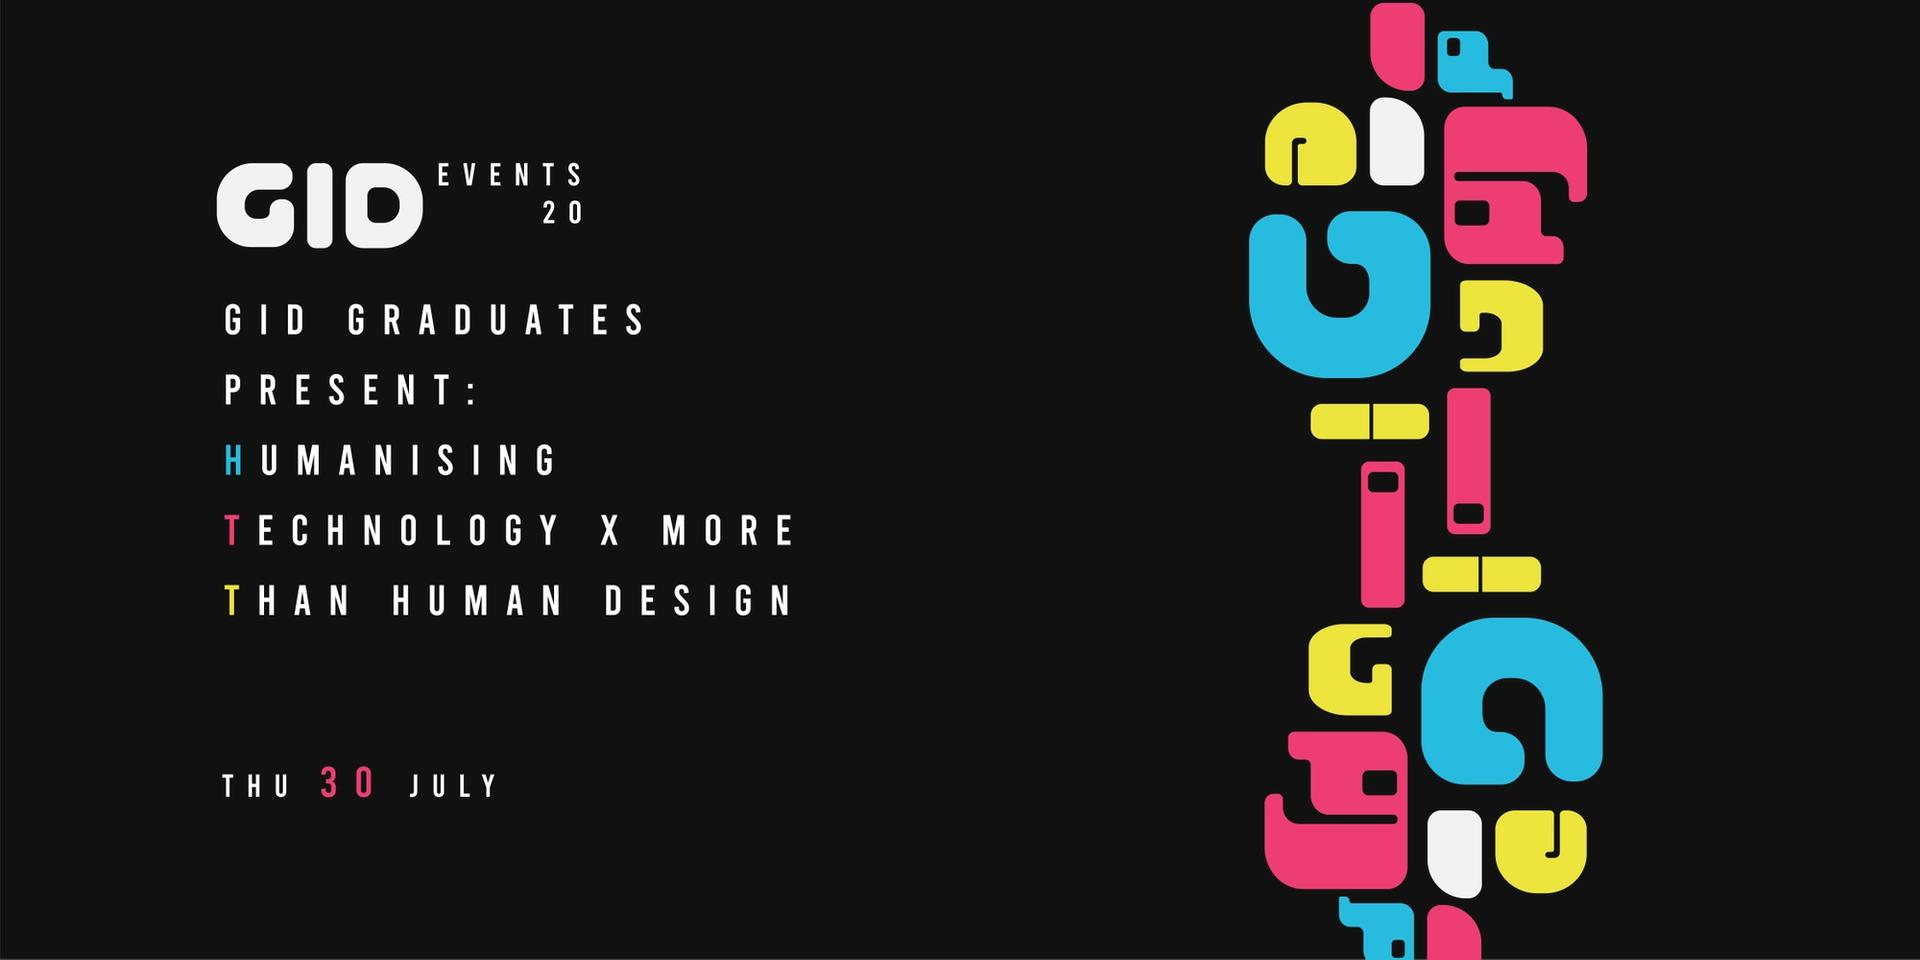 RCA2020 Events_GID Humanising Technology